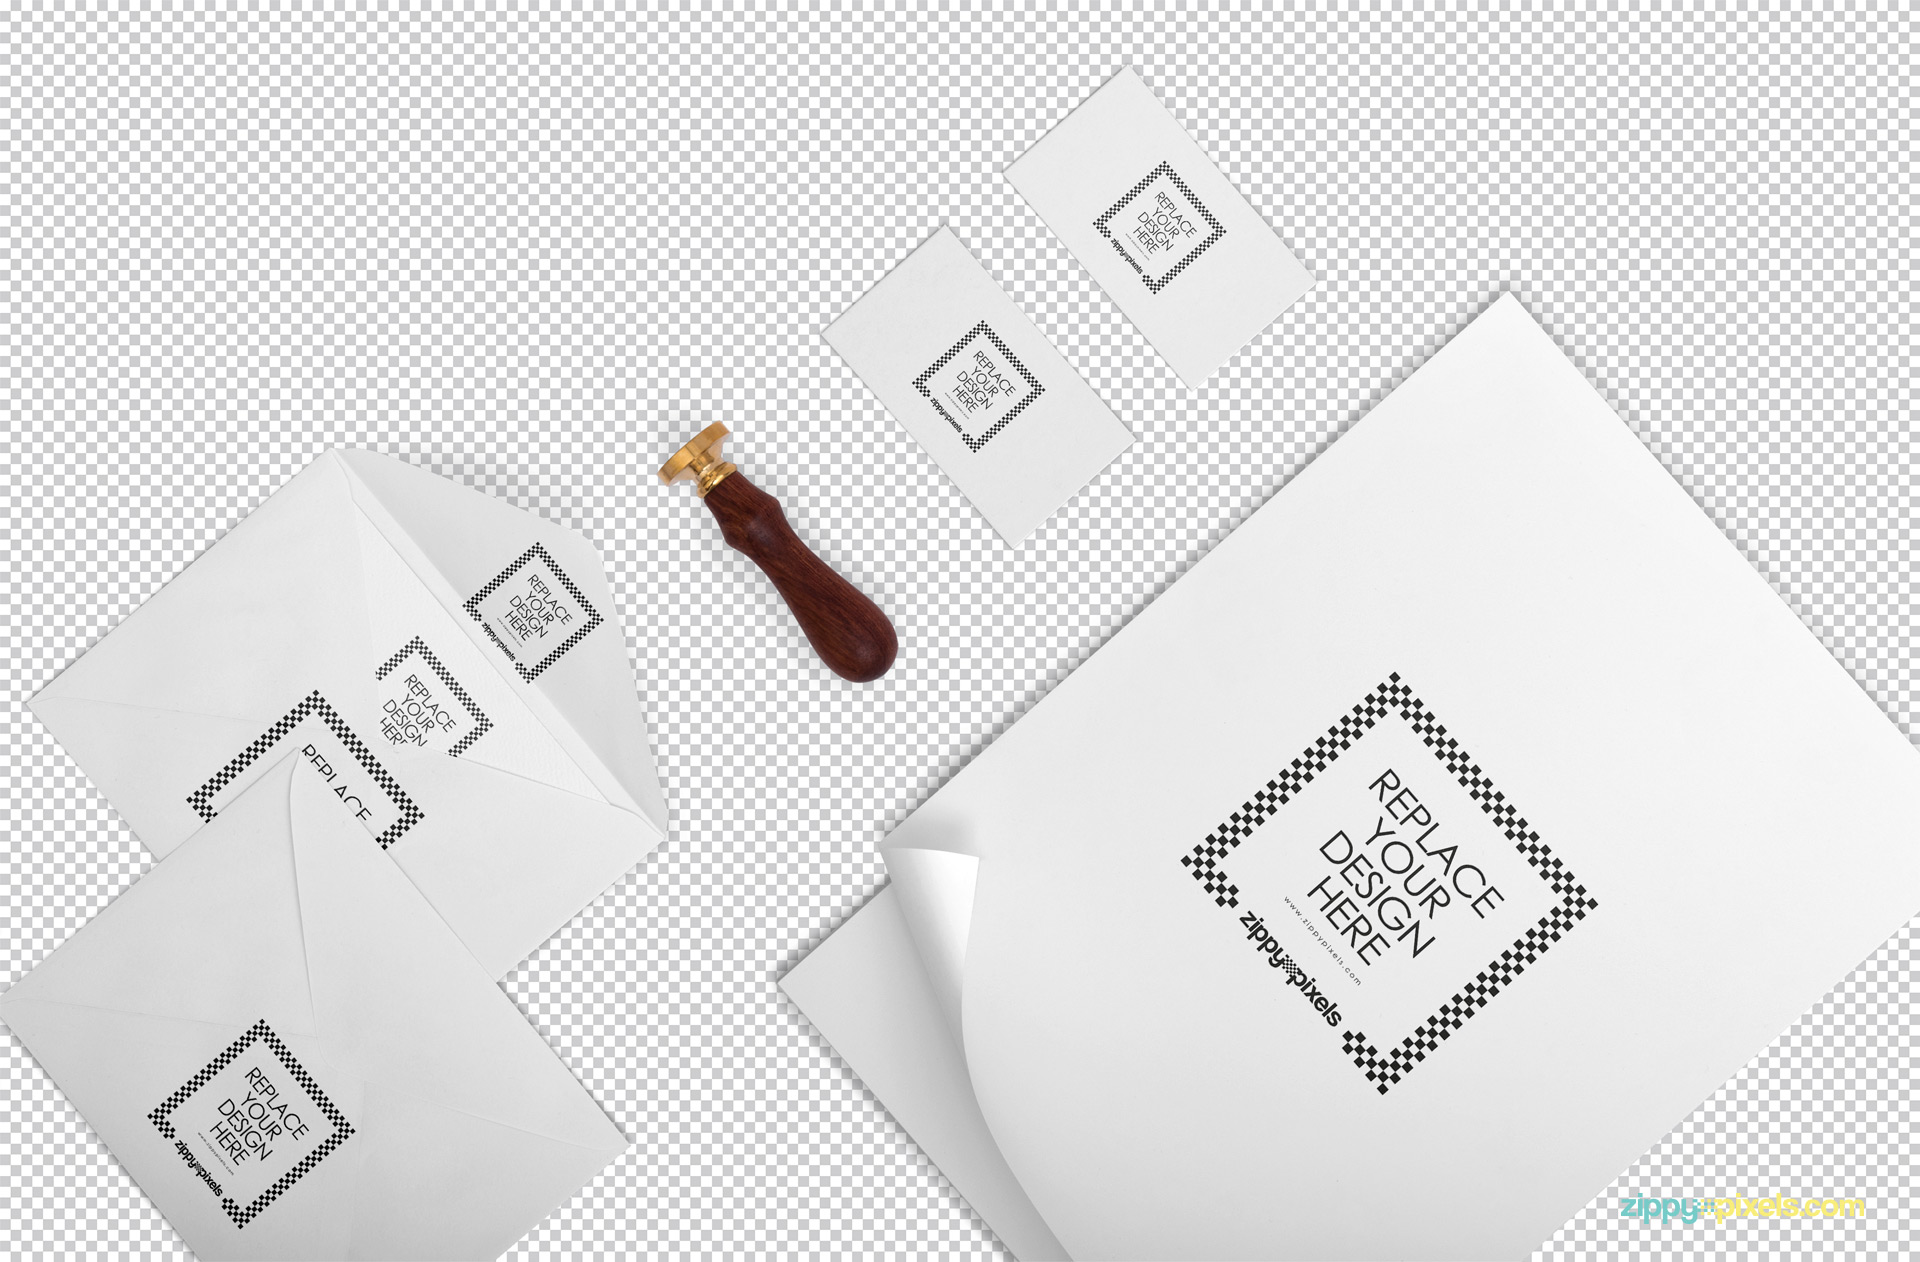 Use Photoshop to customize the plain white stationery scene with your designs.